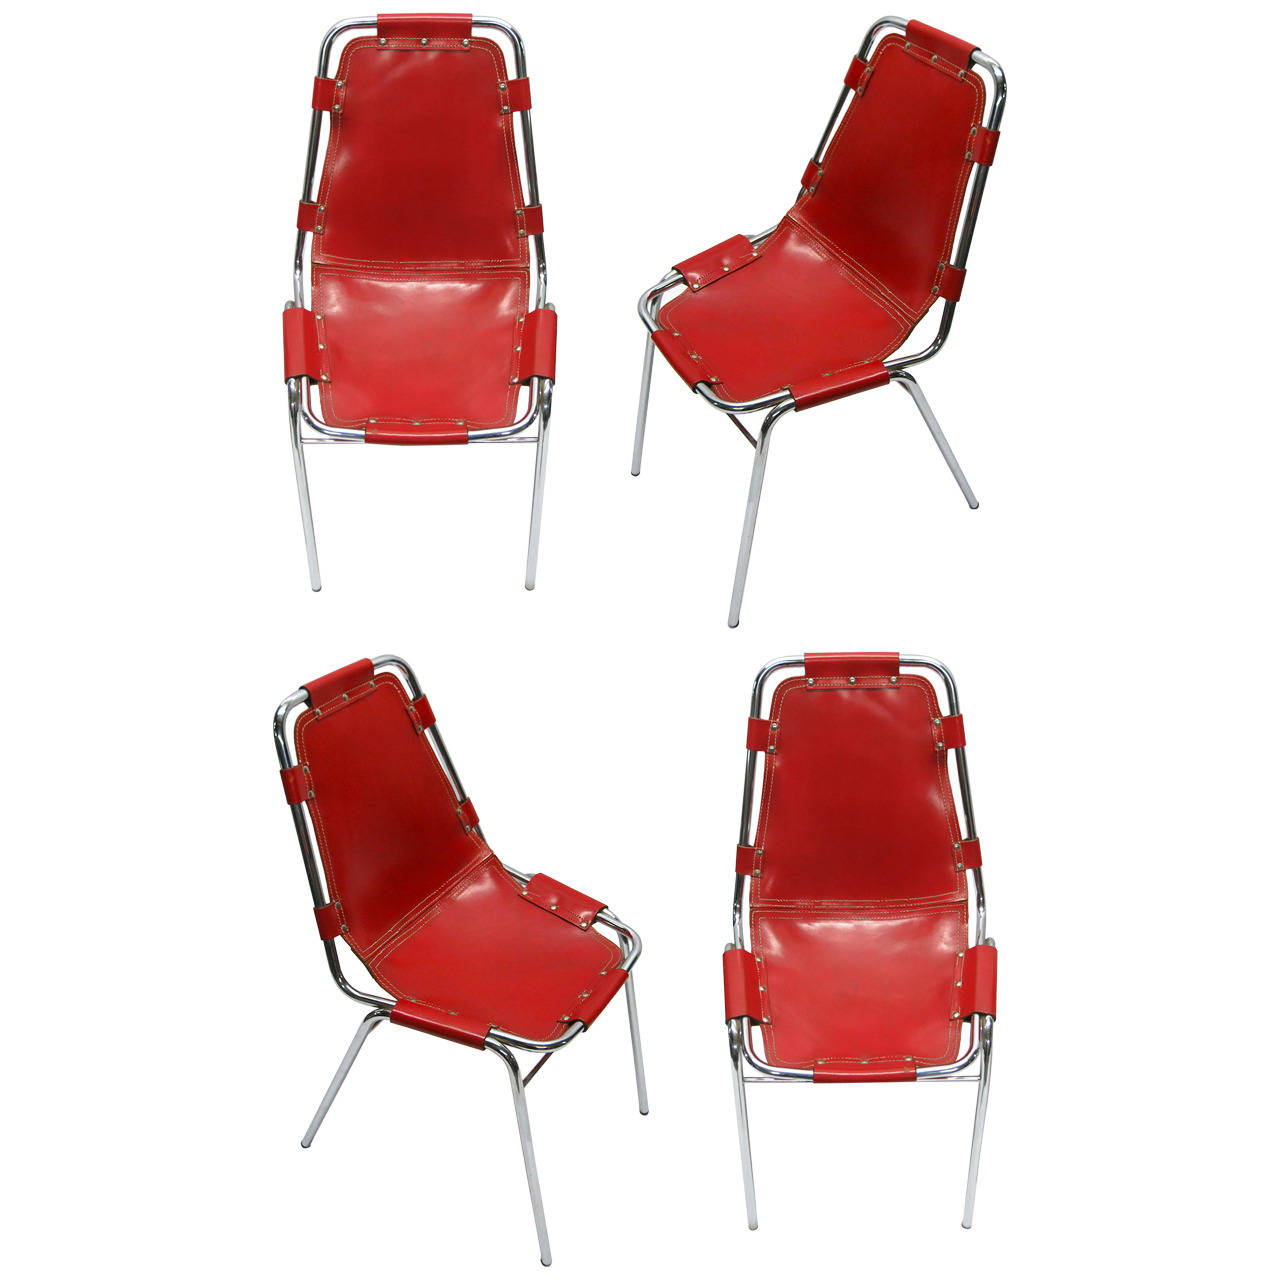 four red chairs by charlotte perriand